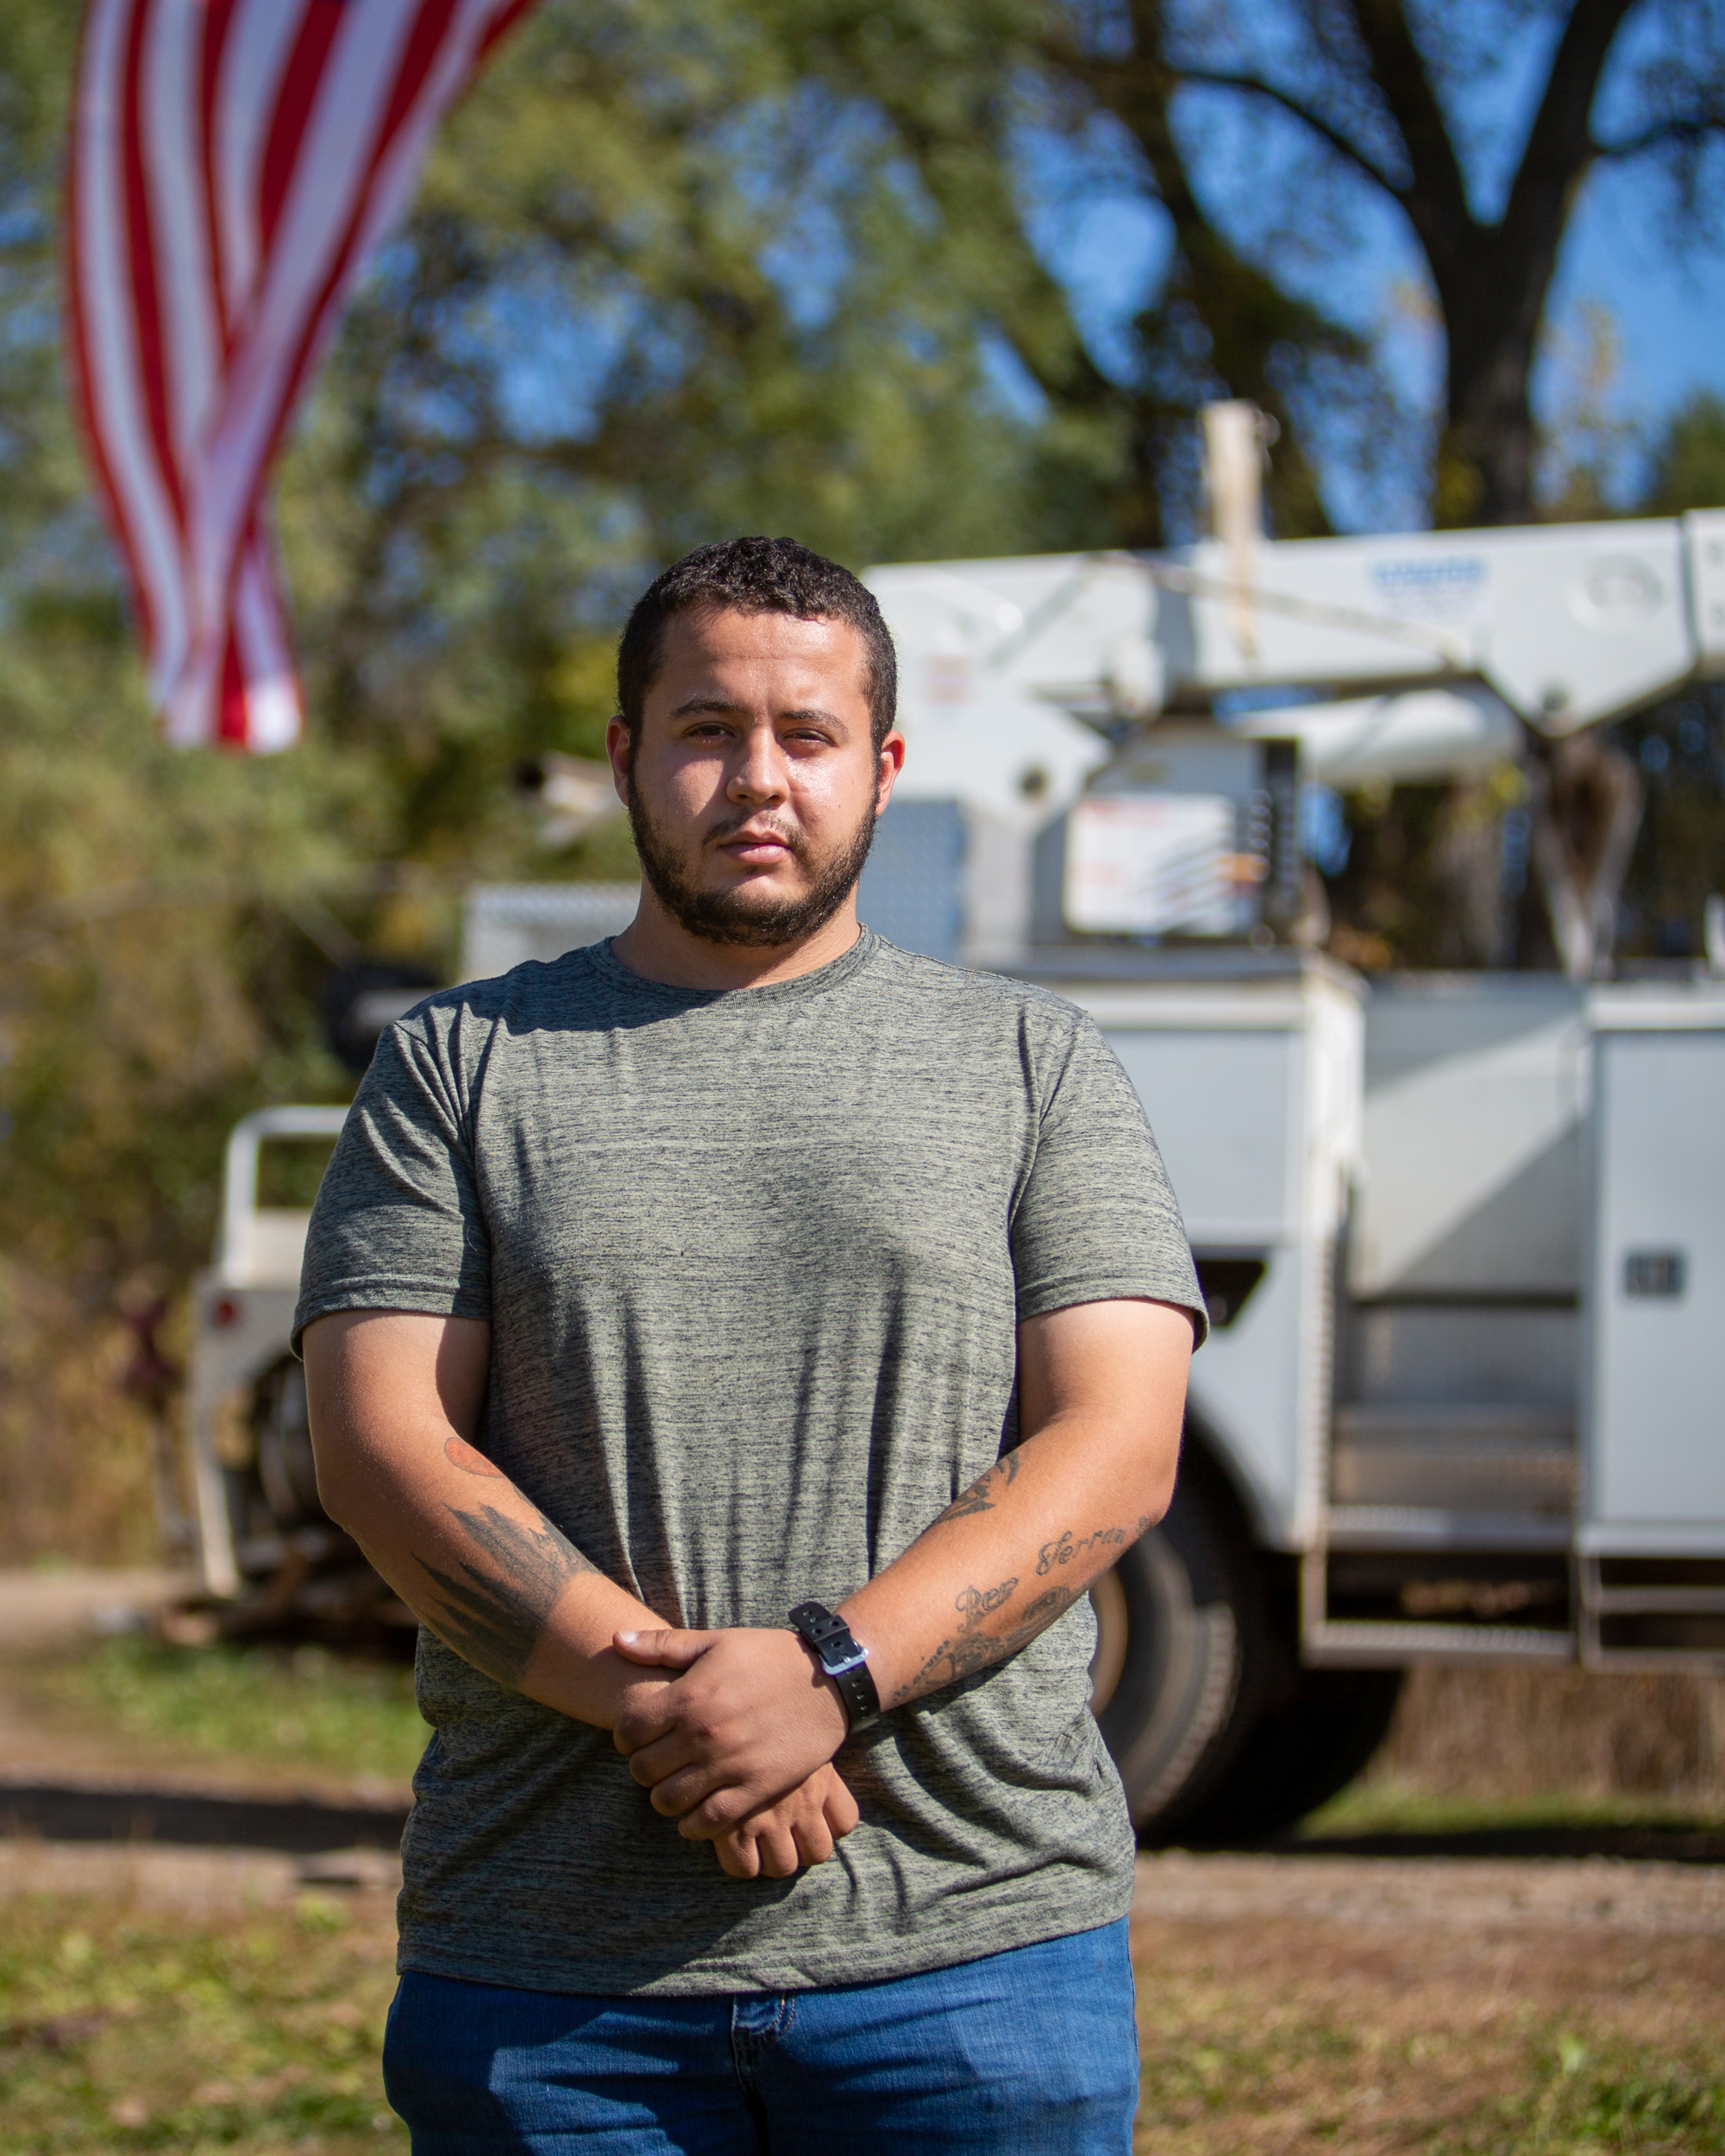 Yusuf Habib, U.S. military veteran, Automotive Technician